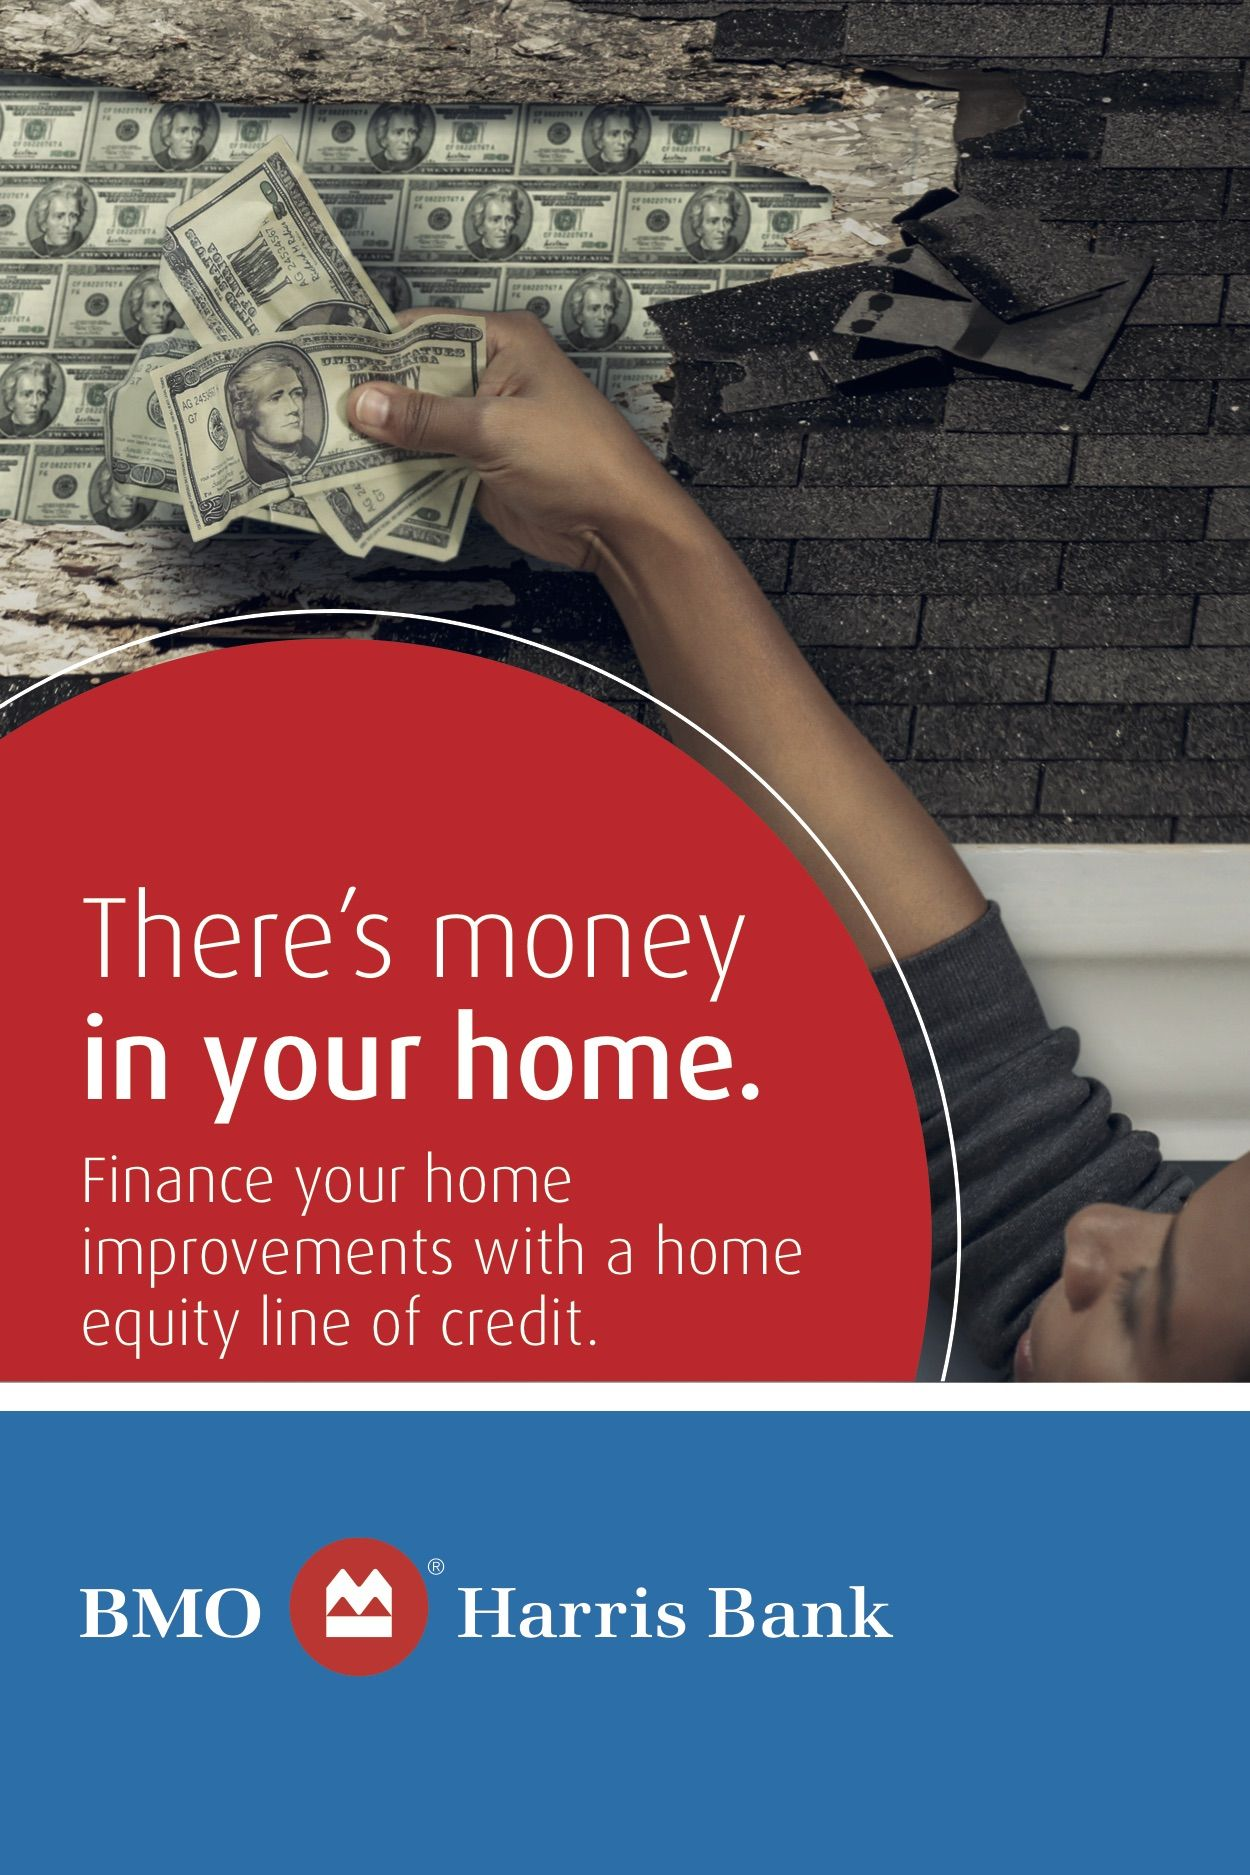 a home equity line of credit from bmo harris can help you finance rh pinterest com